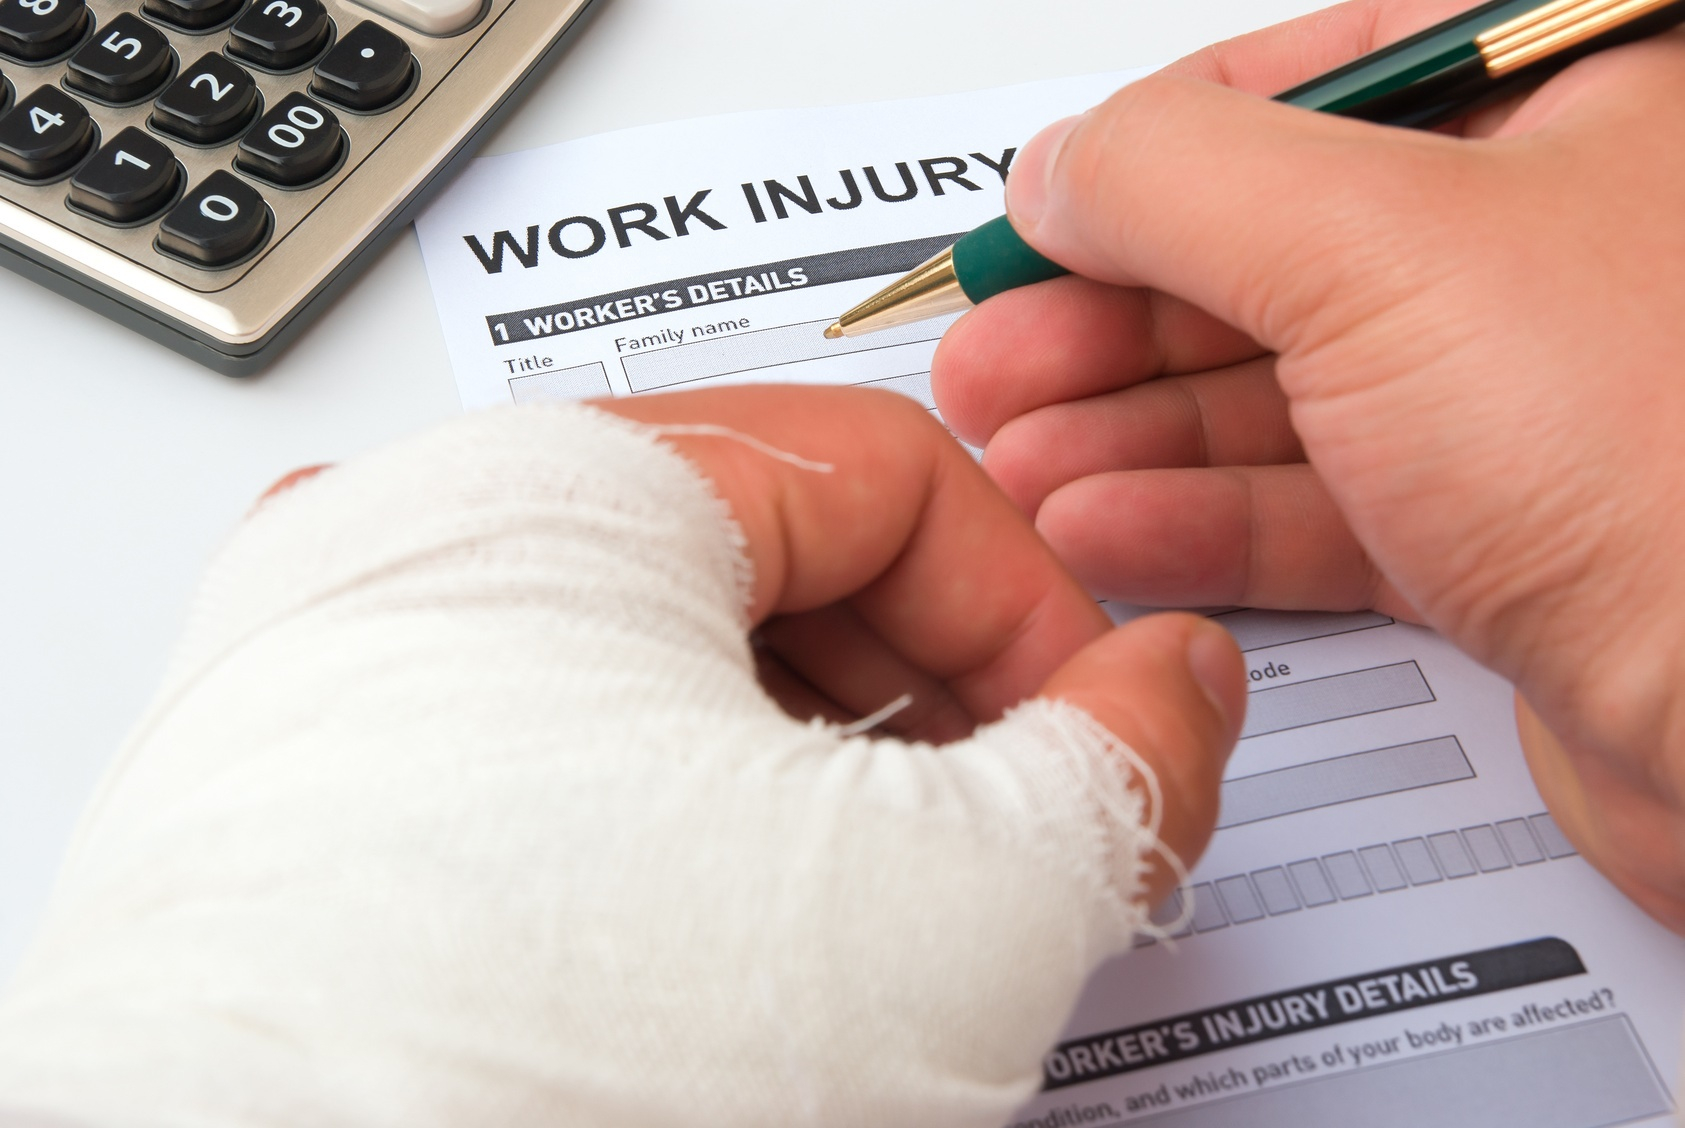 Personal Injury Lawyer in Plymouth Ma - Workers Compensation Attorney in Plymouth, MA